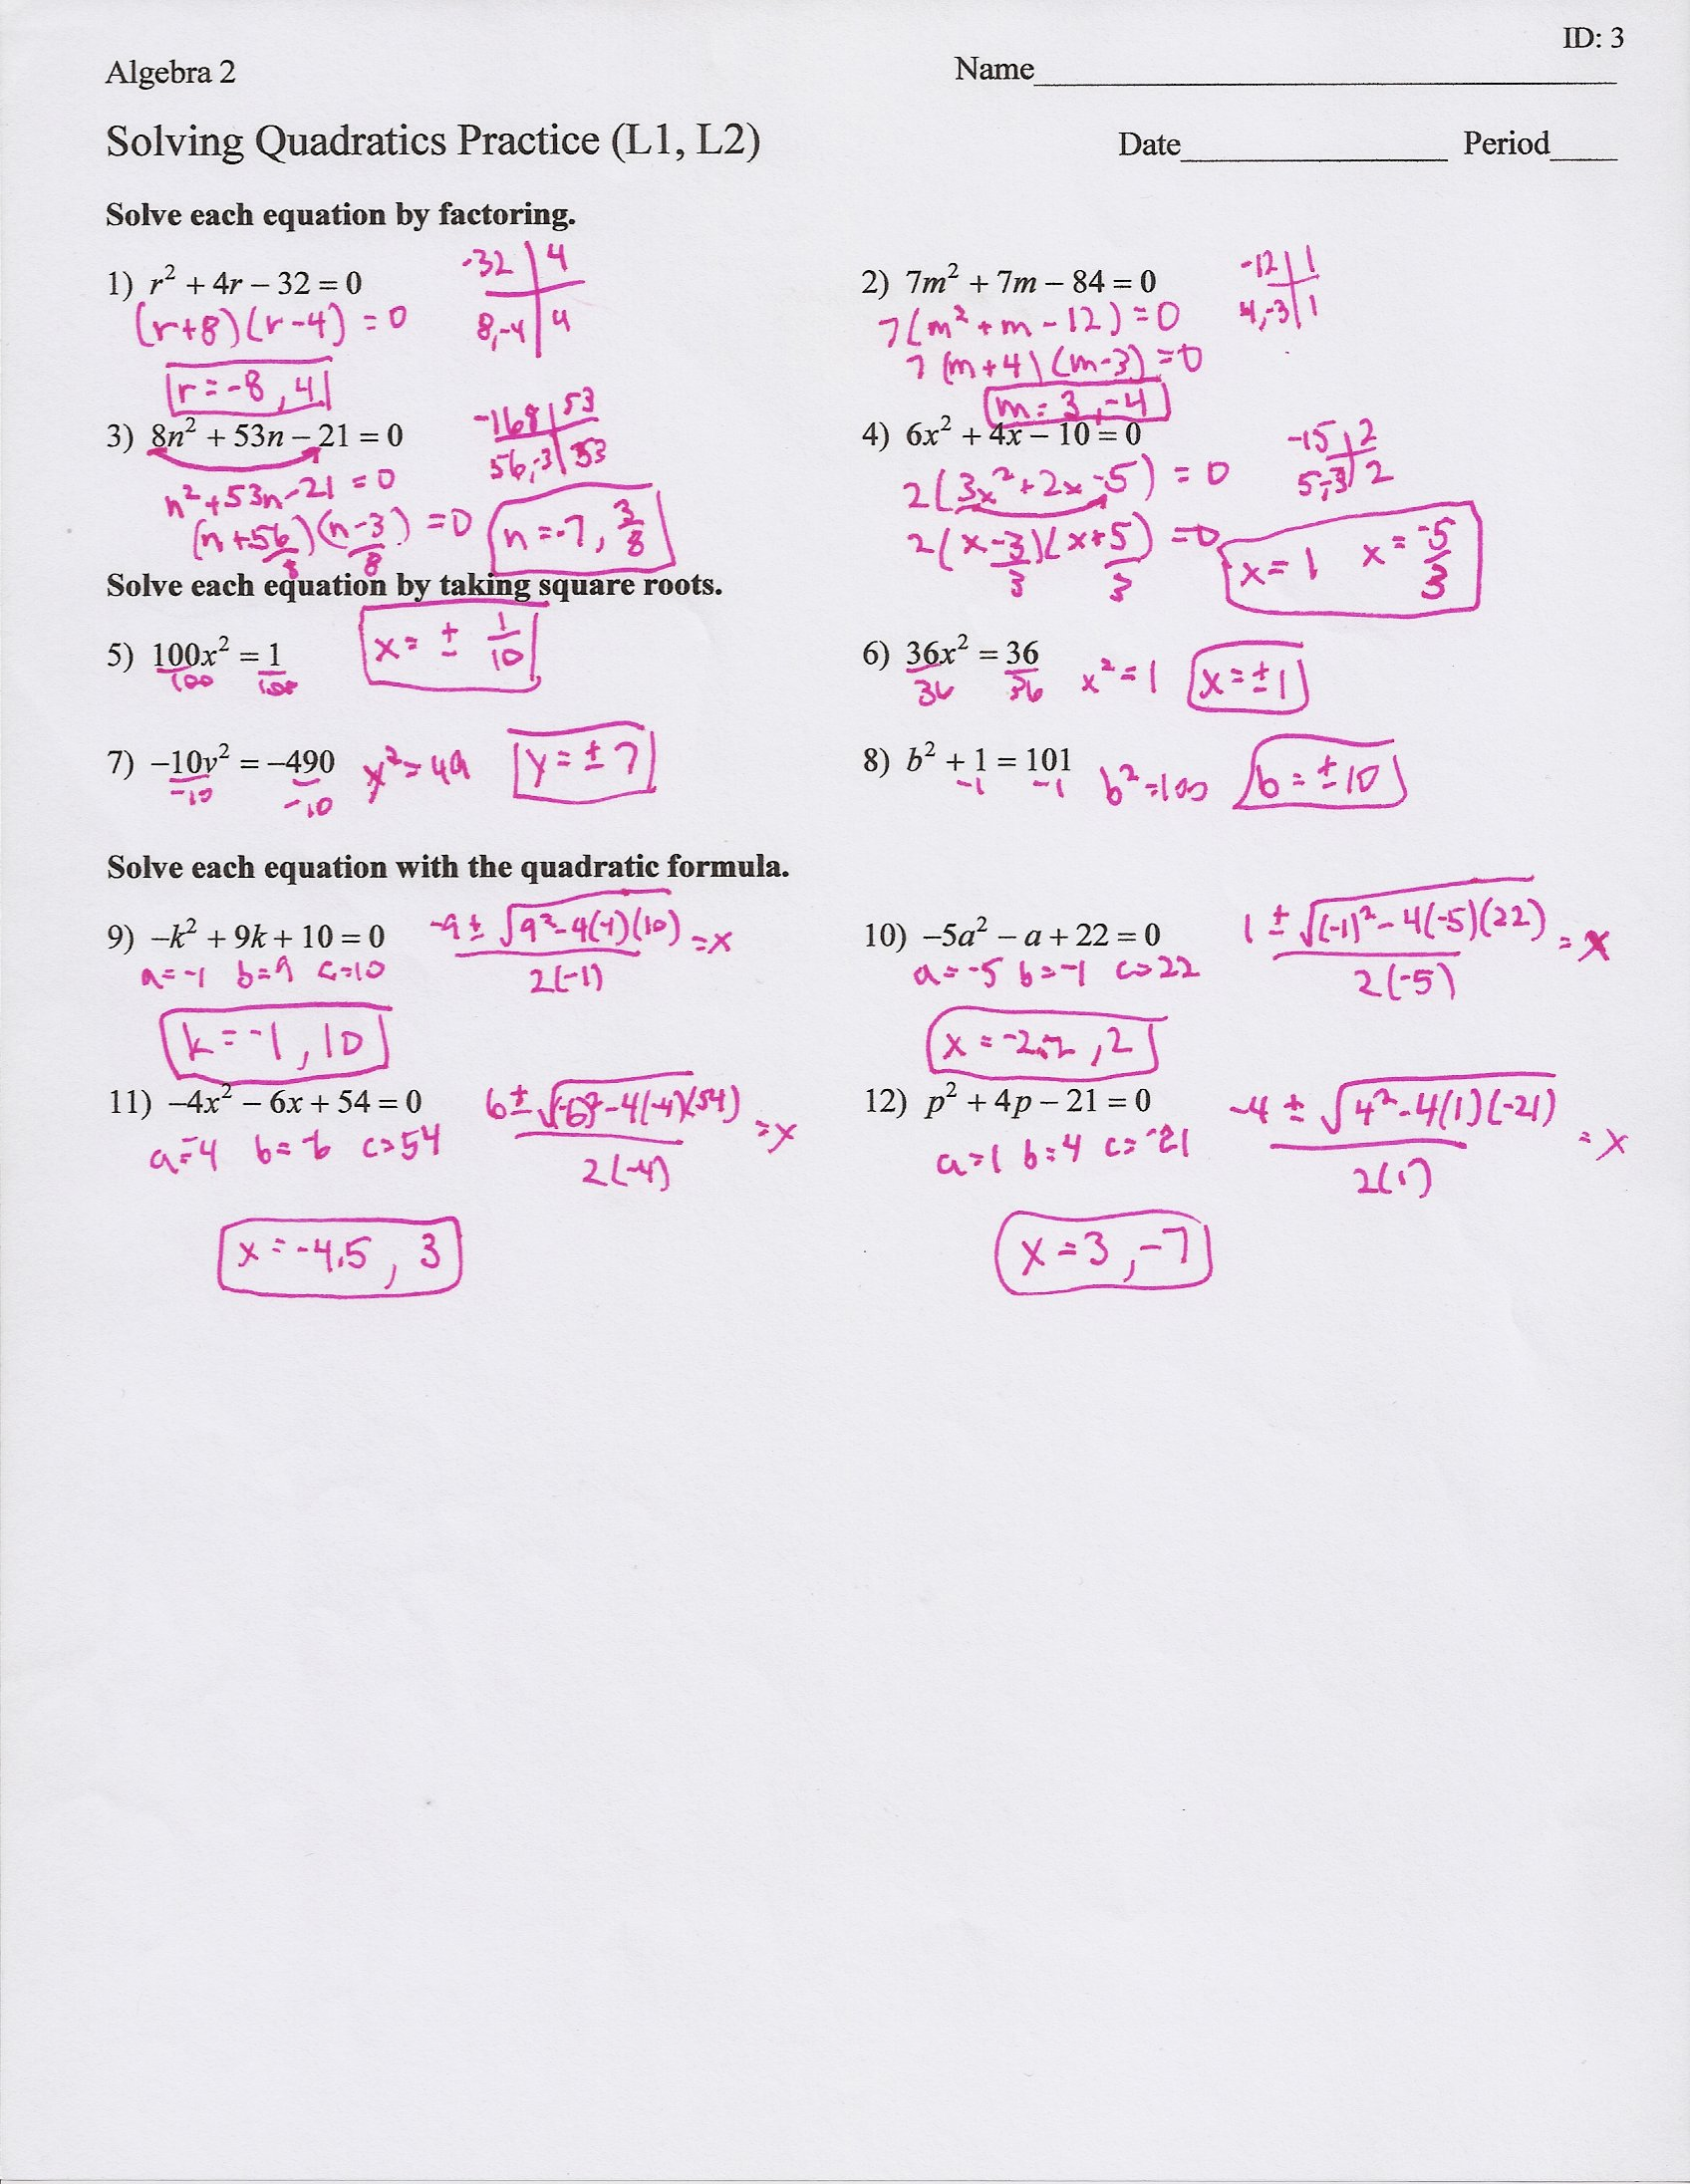 worksheet Solving Quadratic Equations Worksheet solving quadratic equations worksheet with answers delibertad delibertad